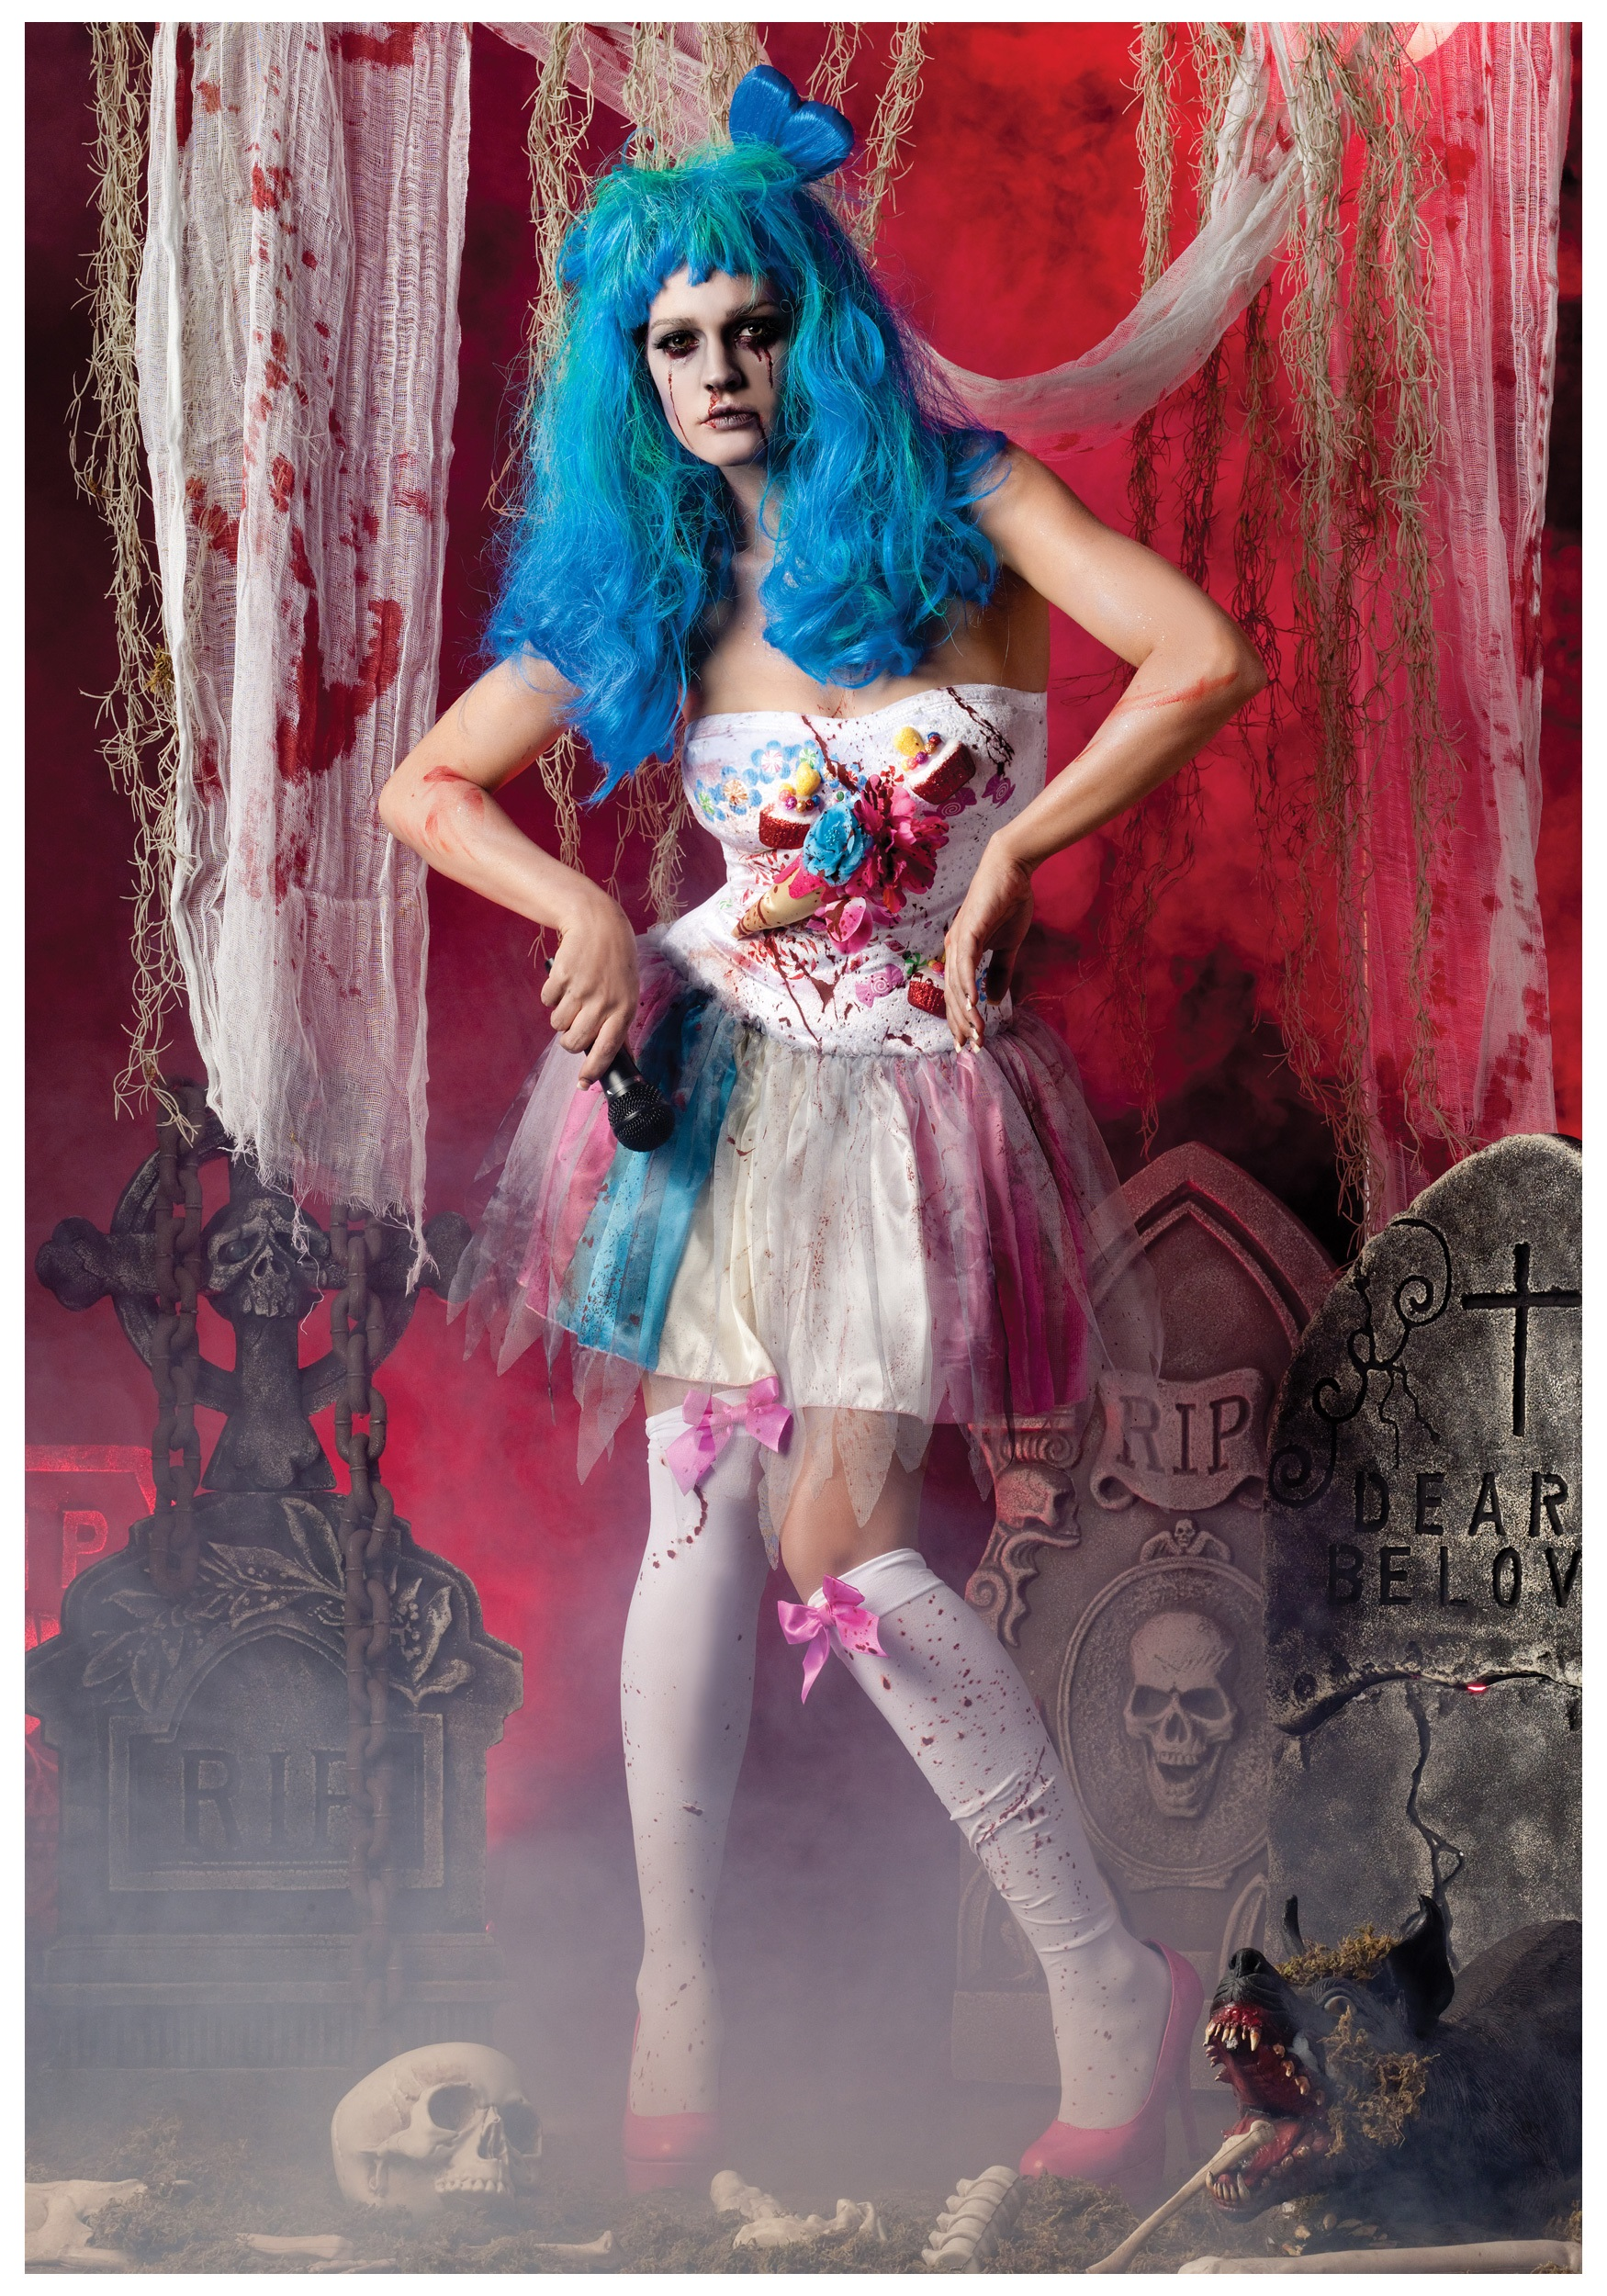 Zombie California Candy Costume Halloween Costume Ideas 2018